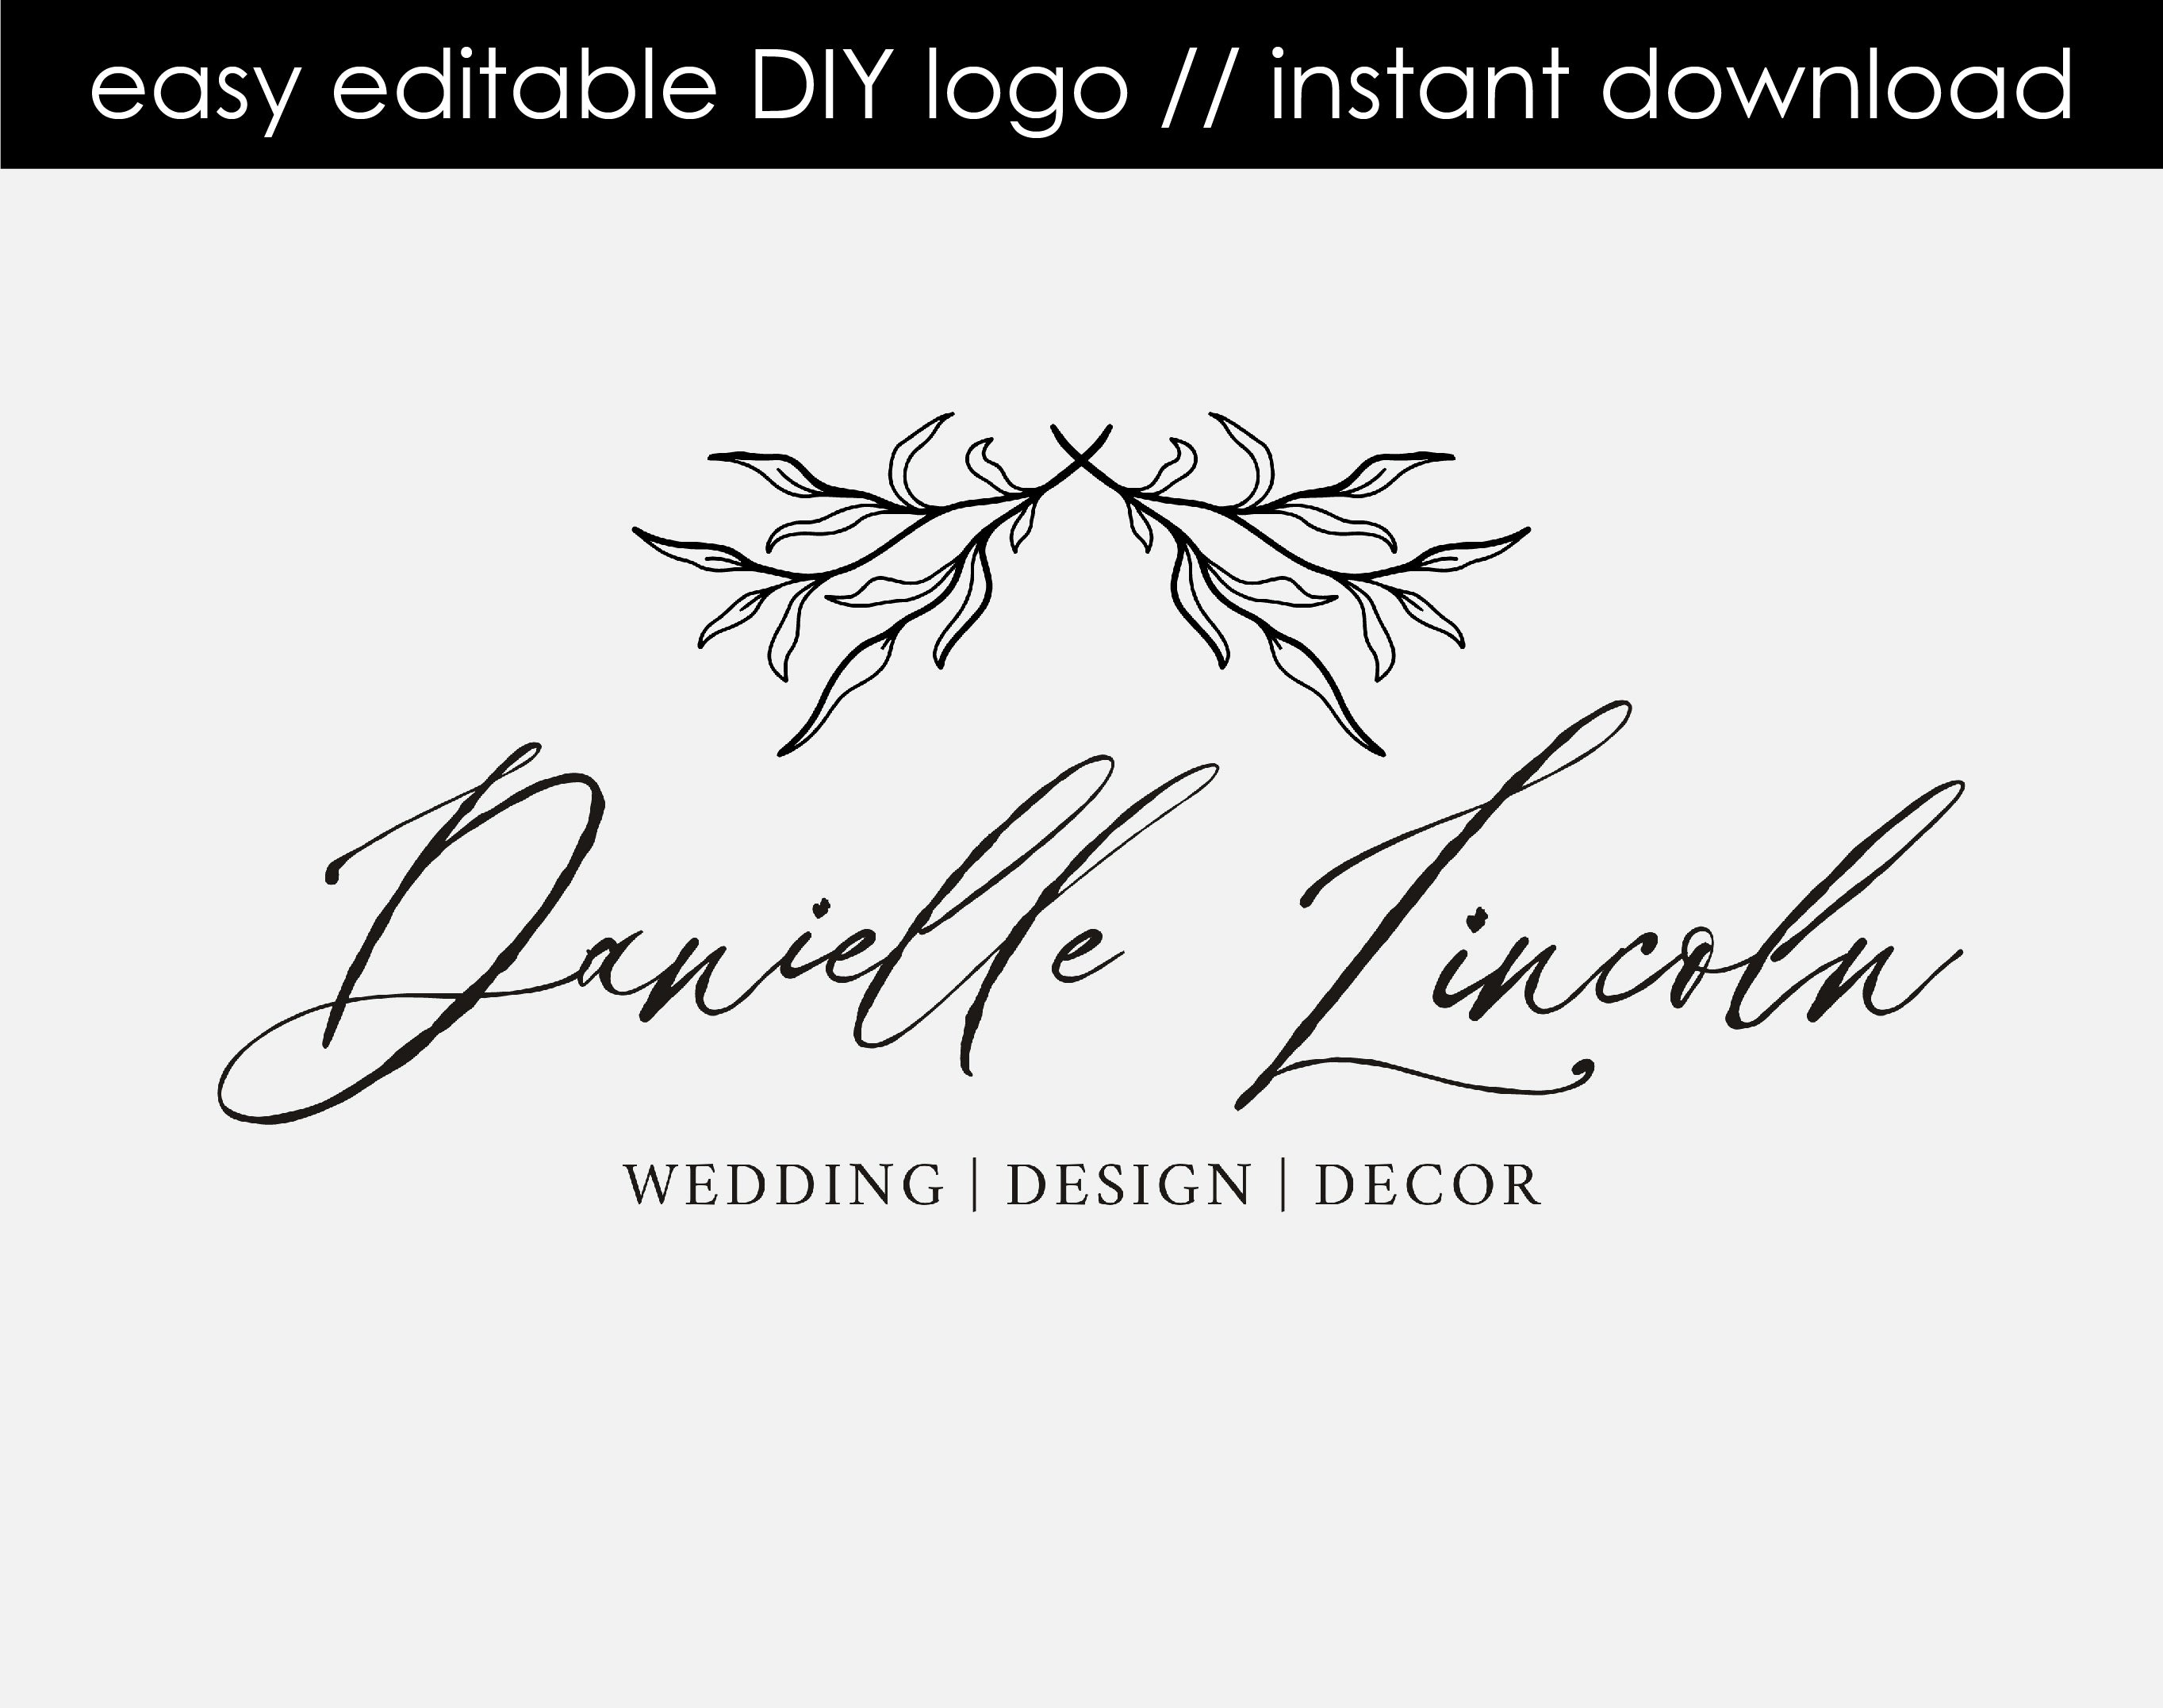 Danielle Lincoln DIY Logo Design